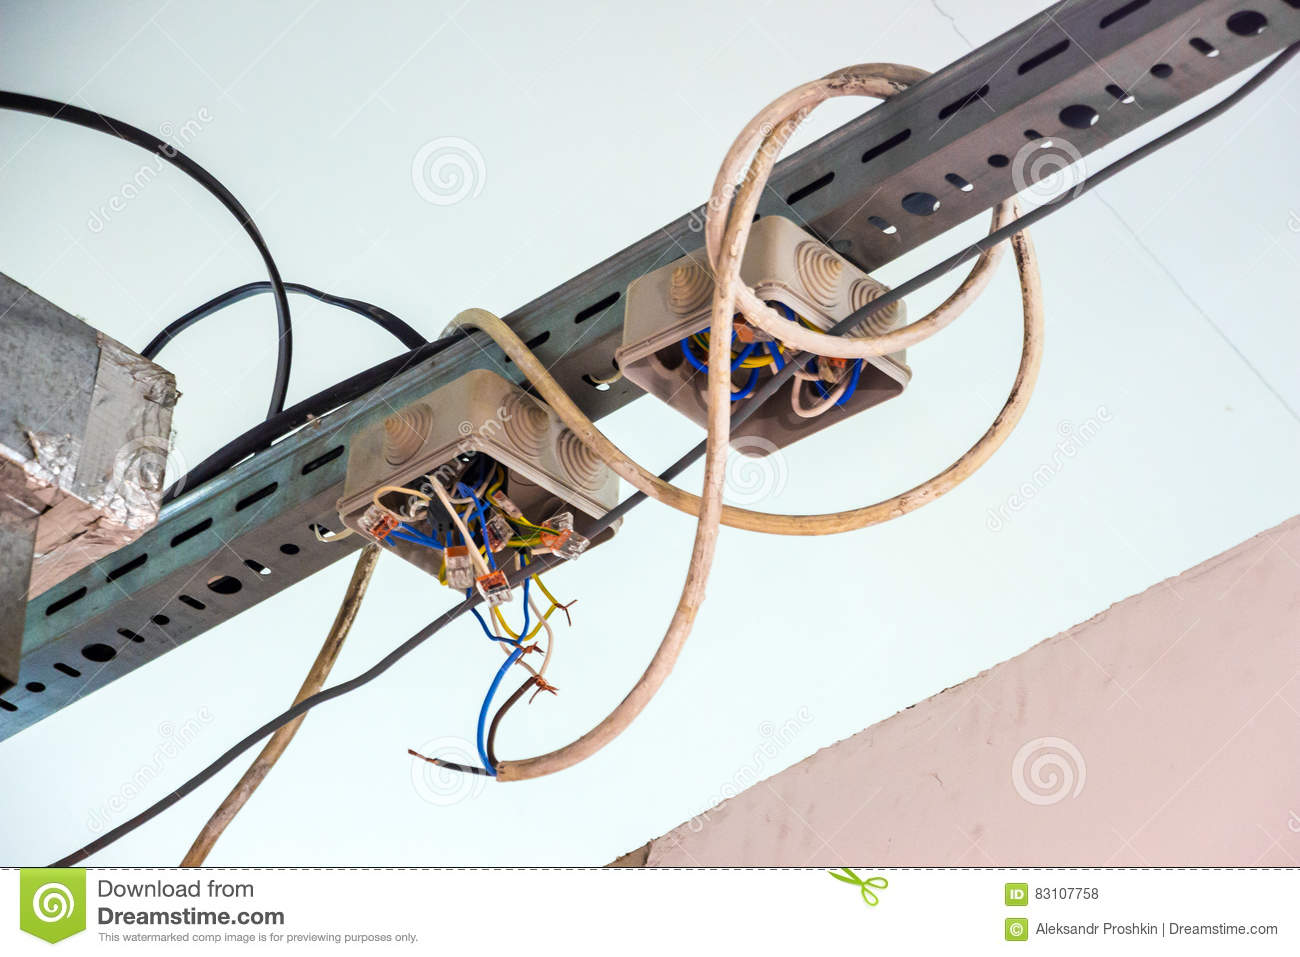 code electrical exposed violation wiring ... : electrical wiring code - yogabreezes.com